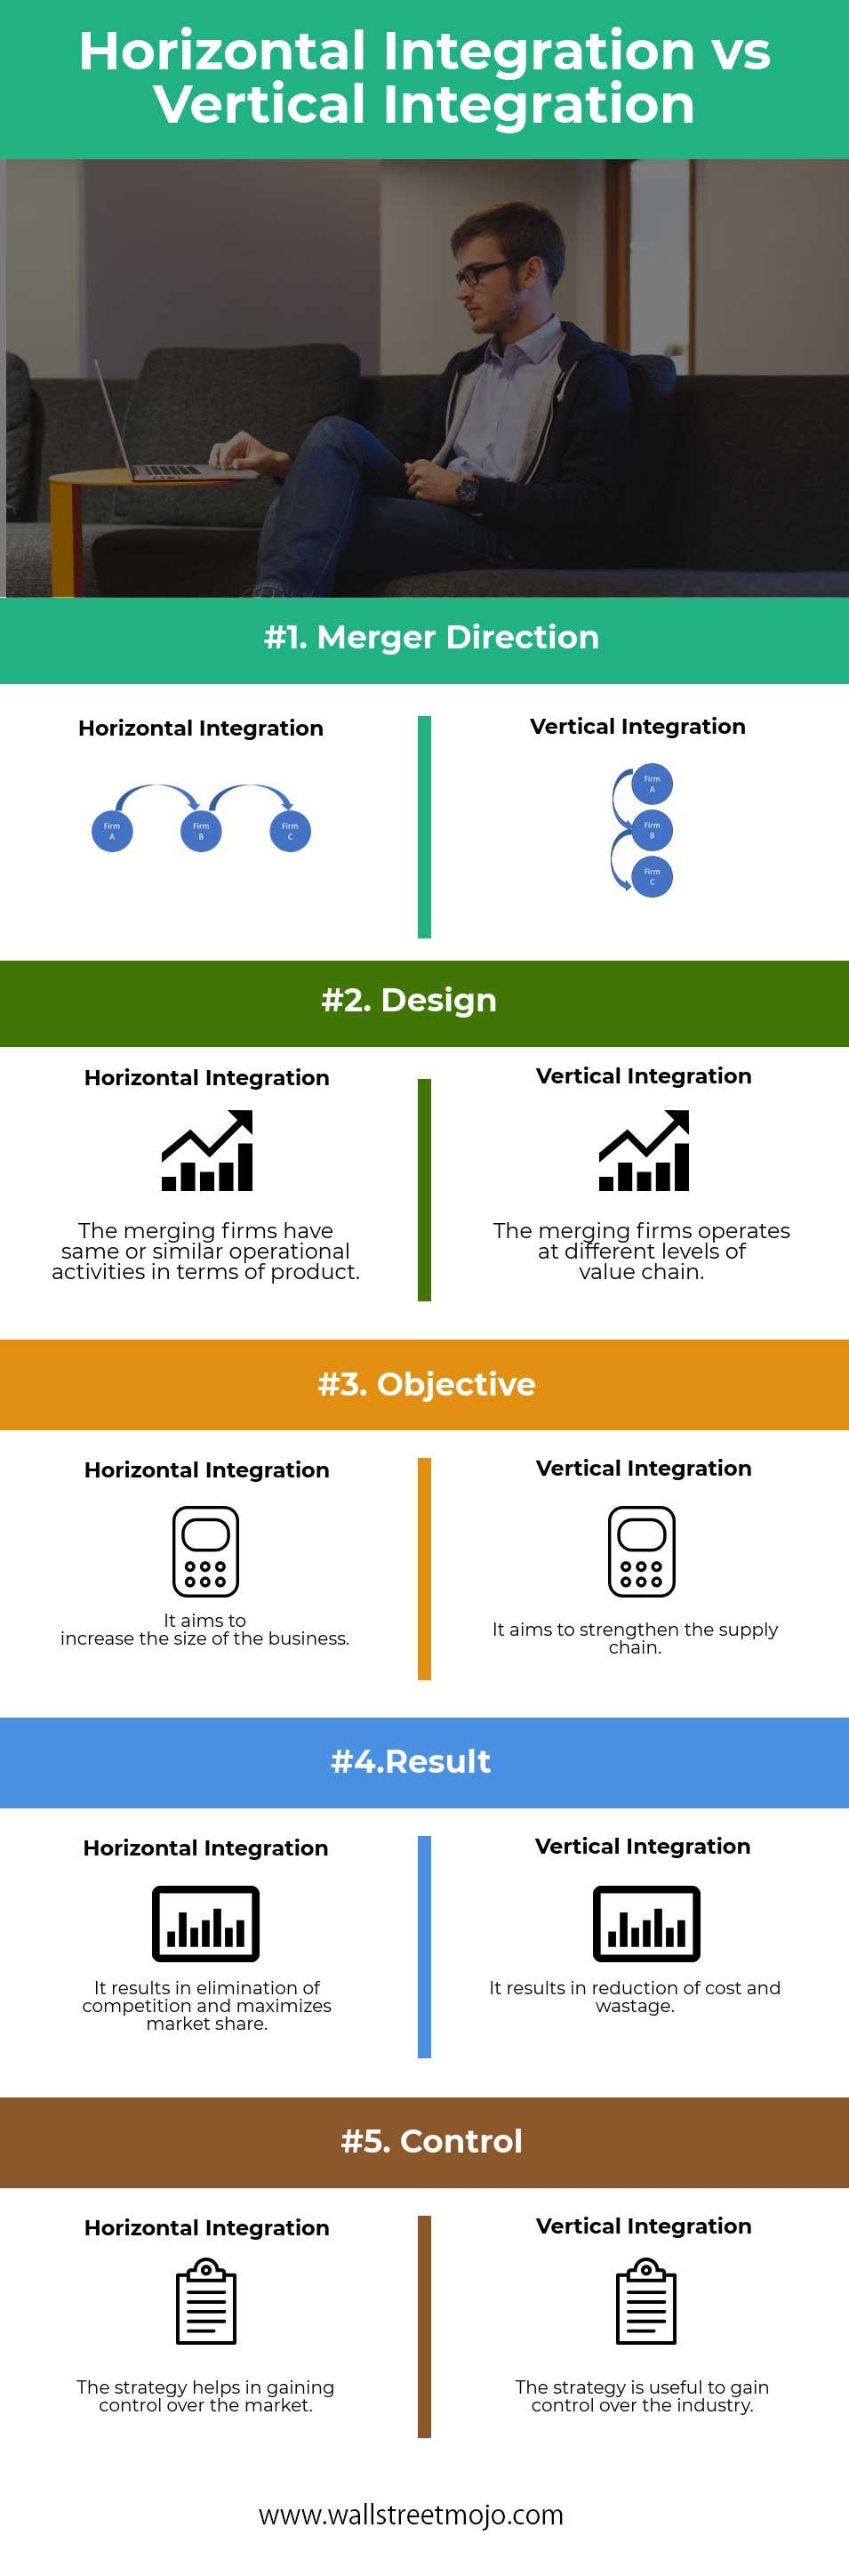 Horizontal Vs Vertical Integration Vertical Integration